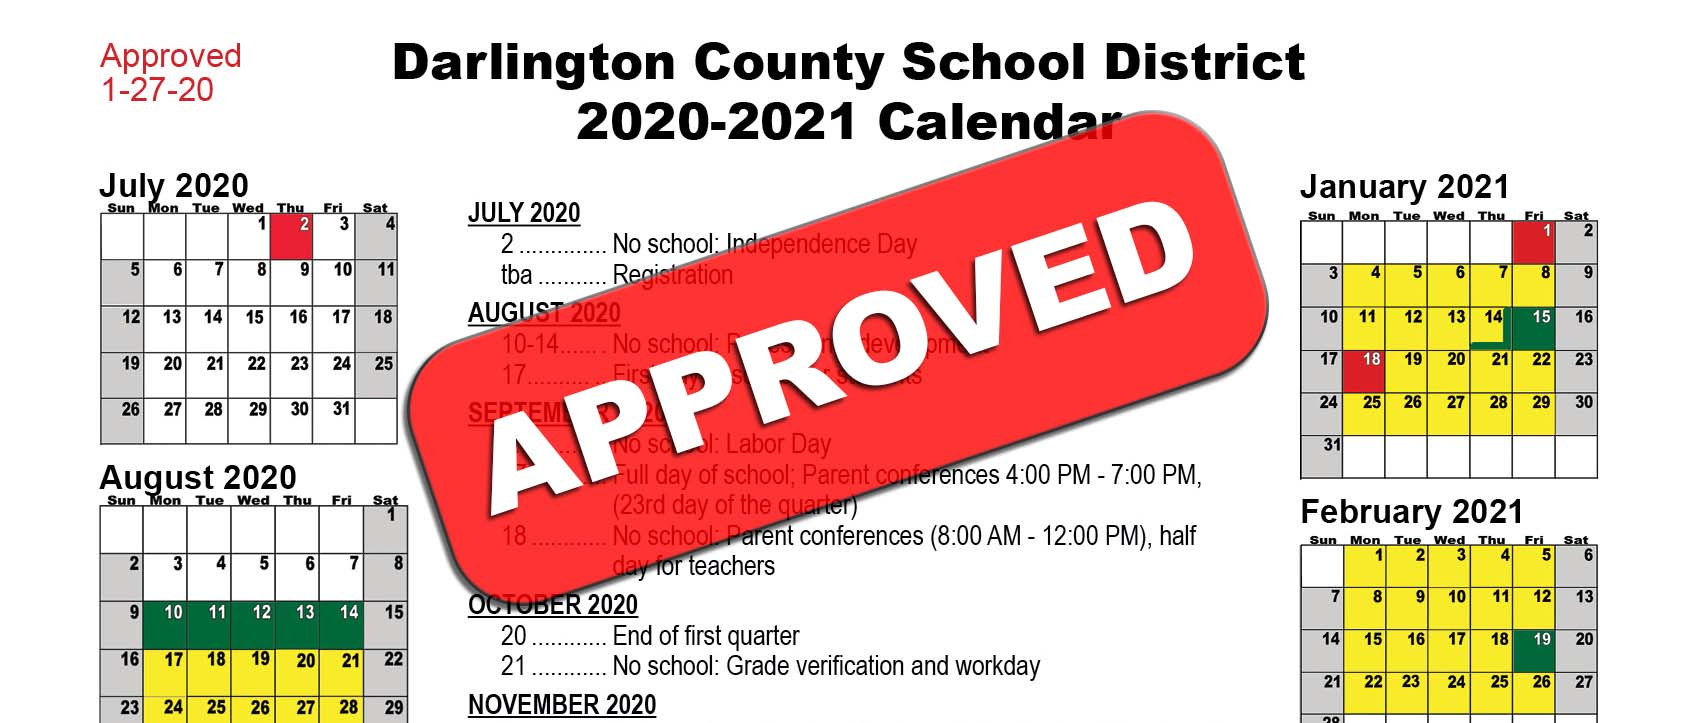 Board Of Education Approves 2020 2021 District Calendar For Proprosed 2021 Fort Worth Isd Calendar